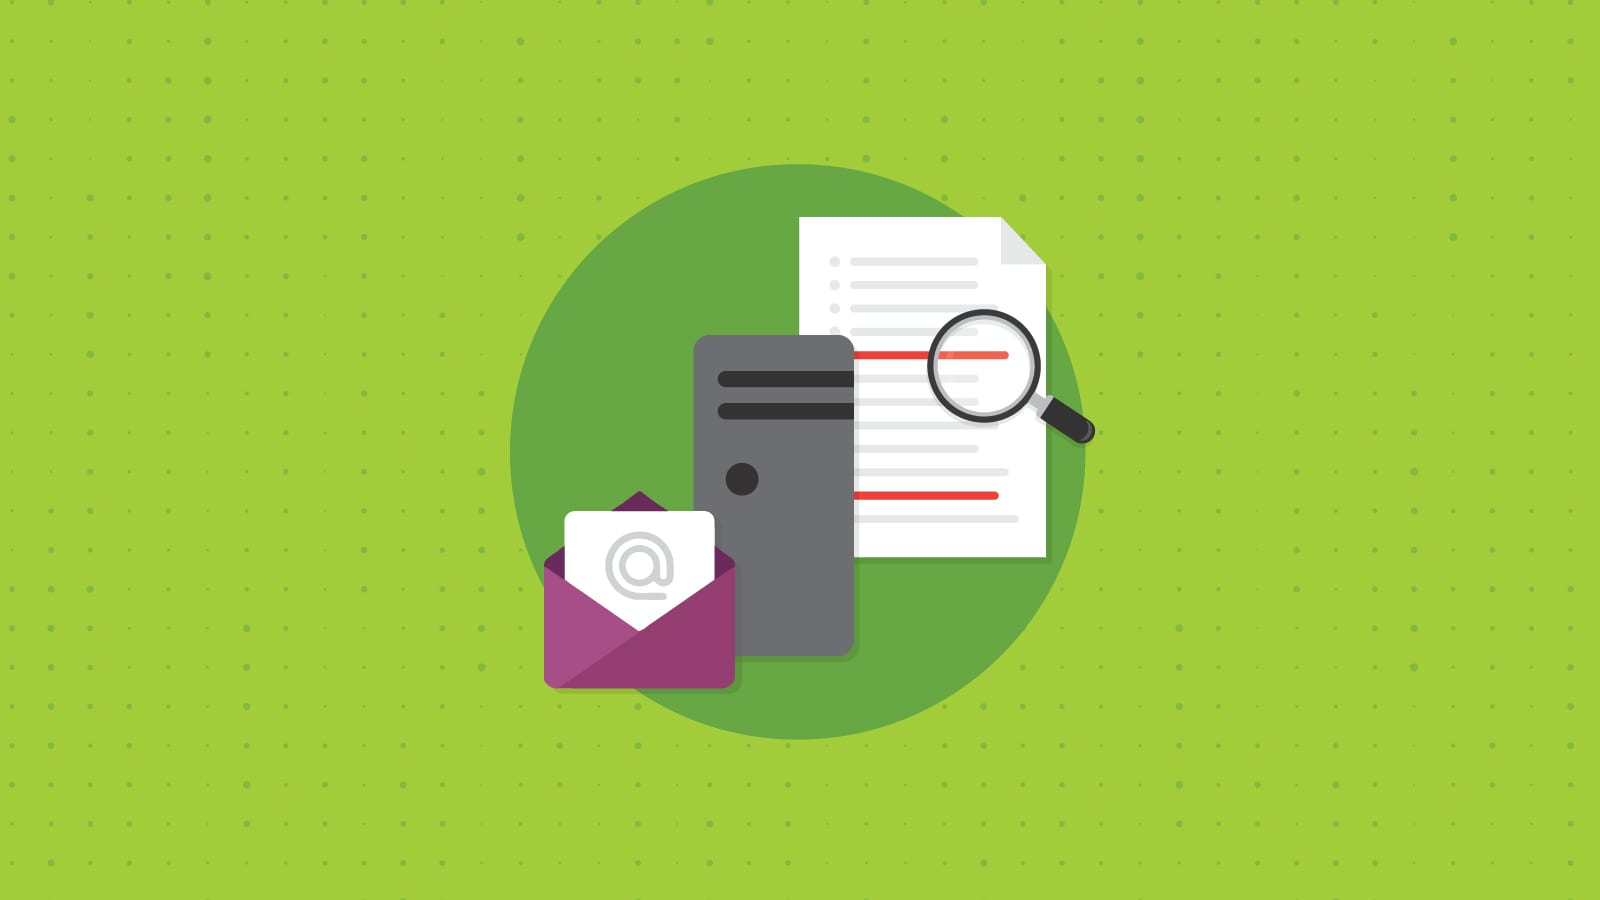 Illustration of an email getting checked against a blacklist.